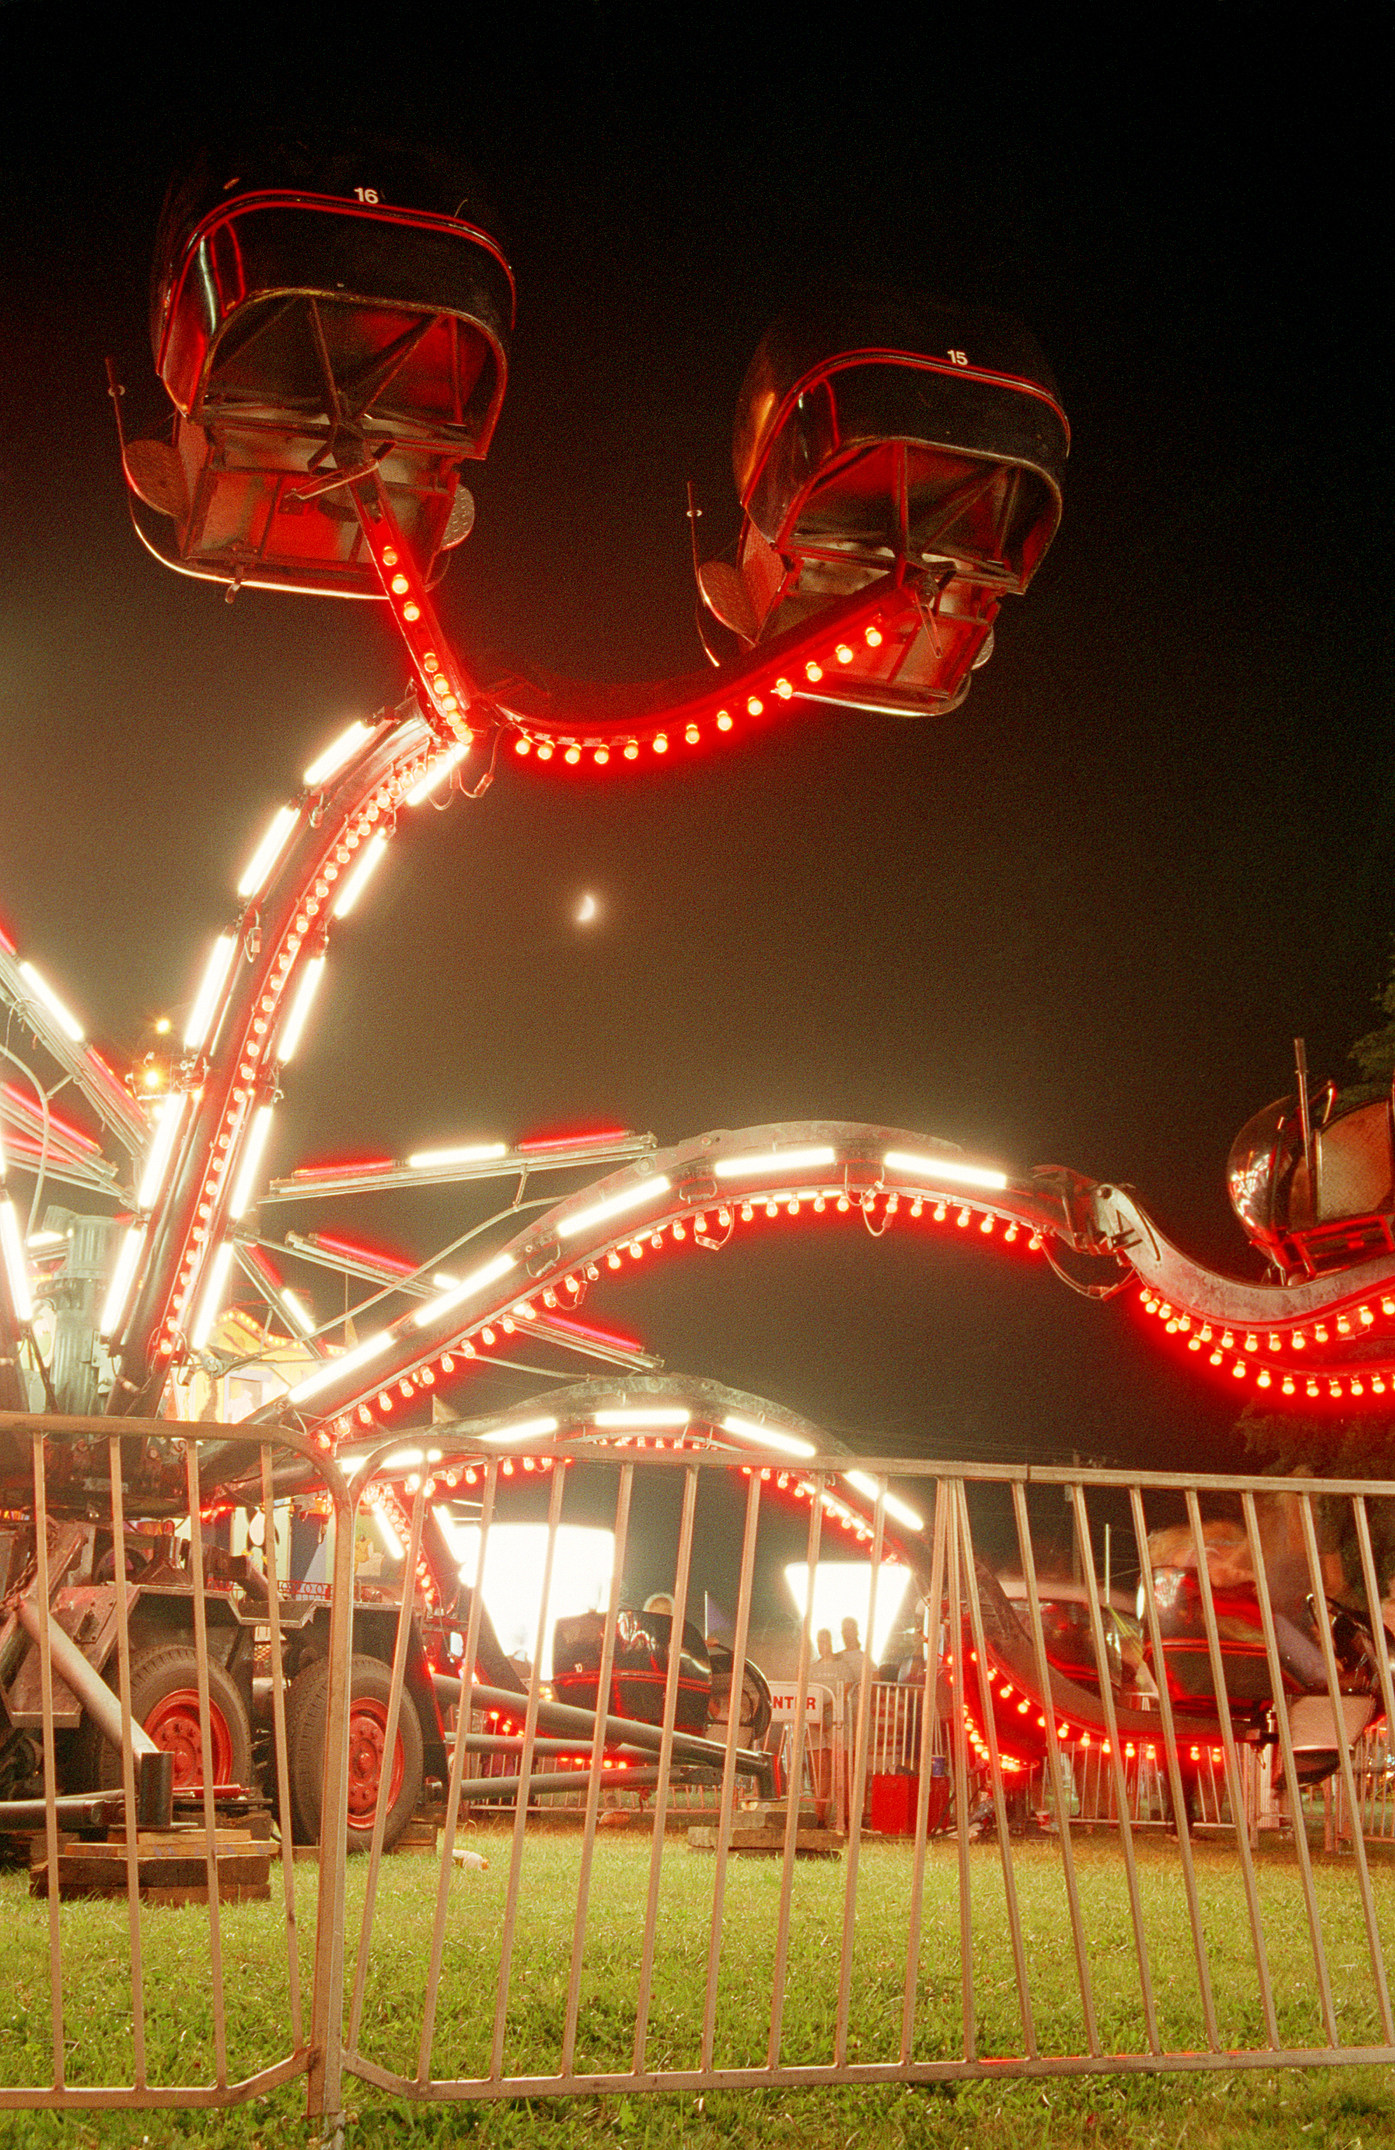 Brightly Lit Carnival Attraction